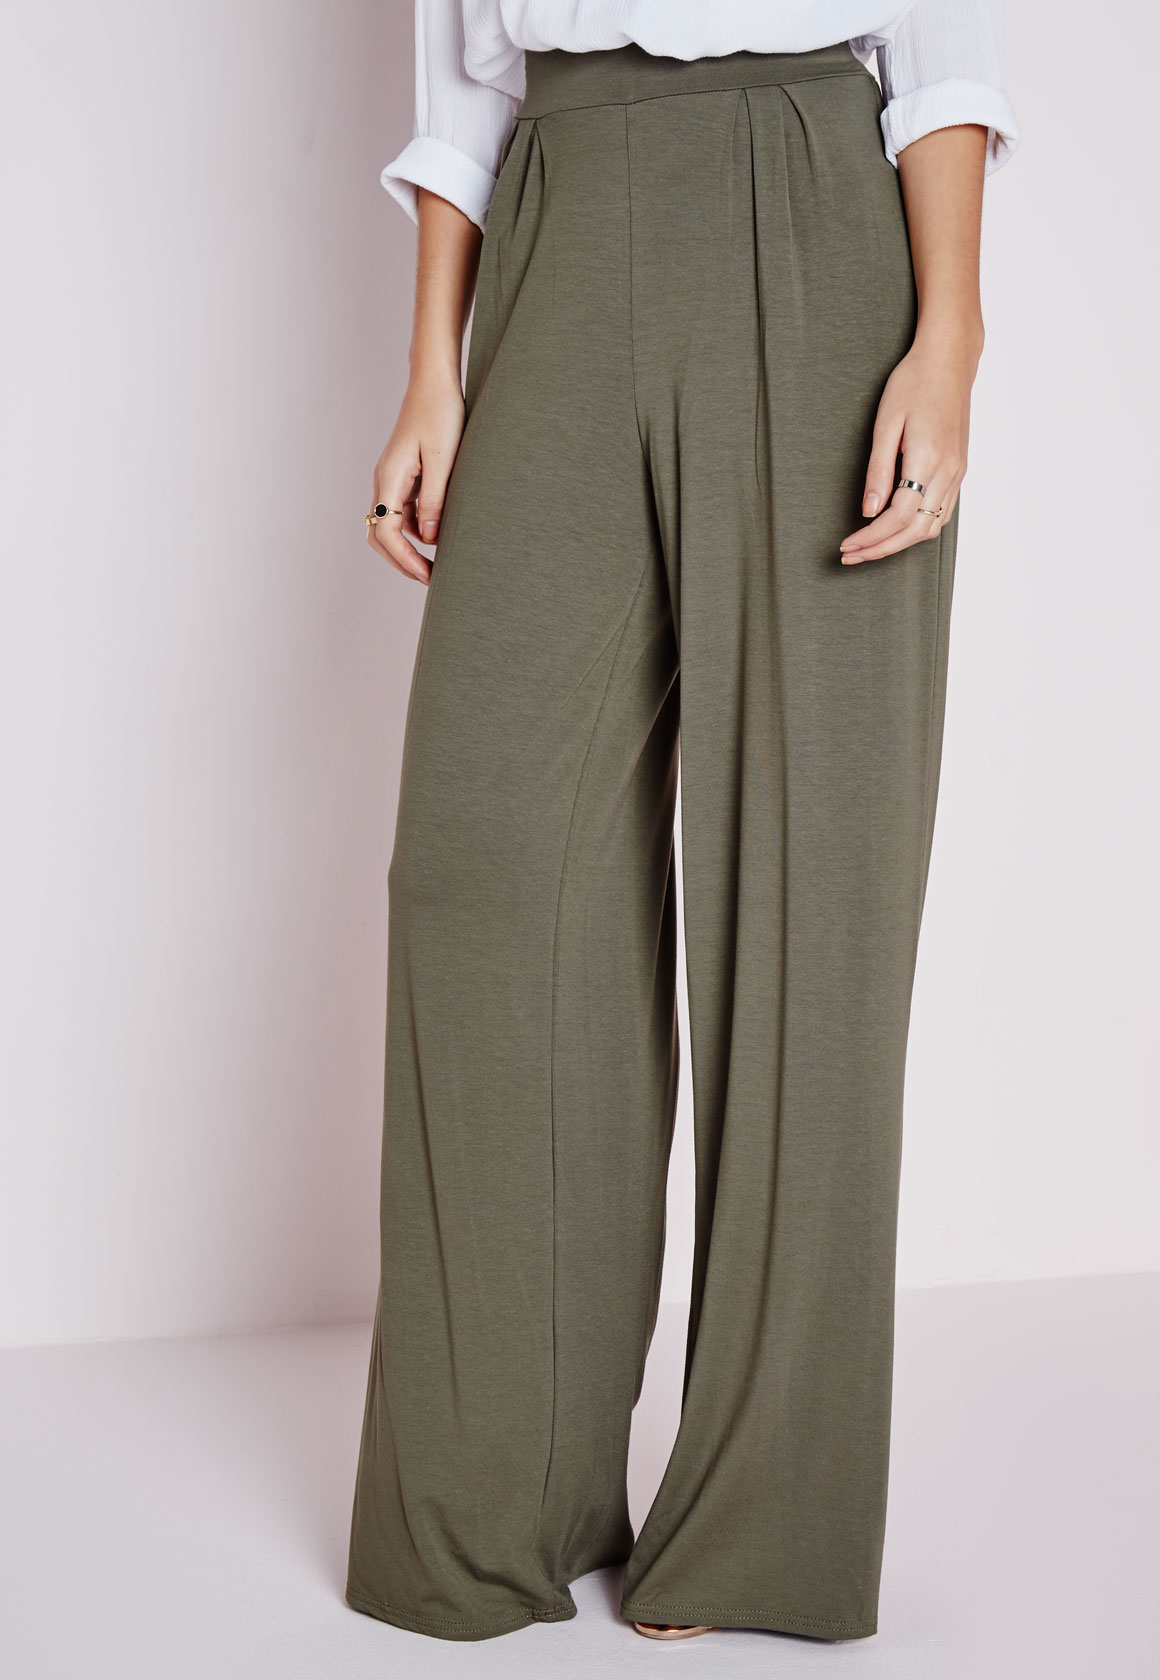 Shop for plus size wide leg pants available in denim, rayon and cotton for every occasion.